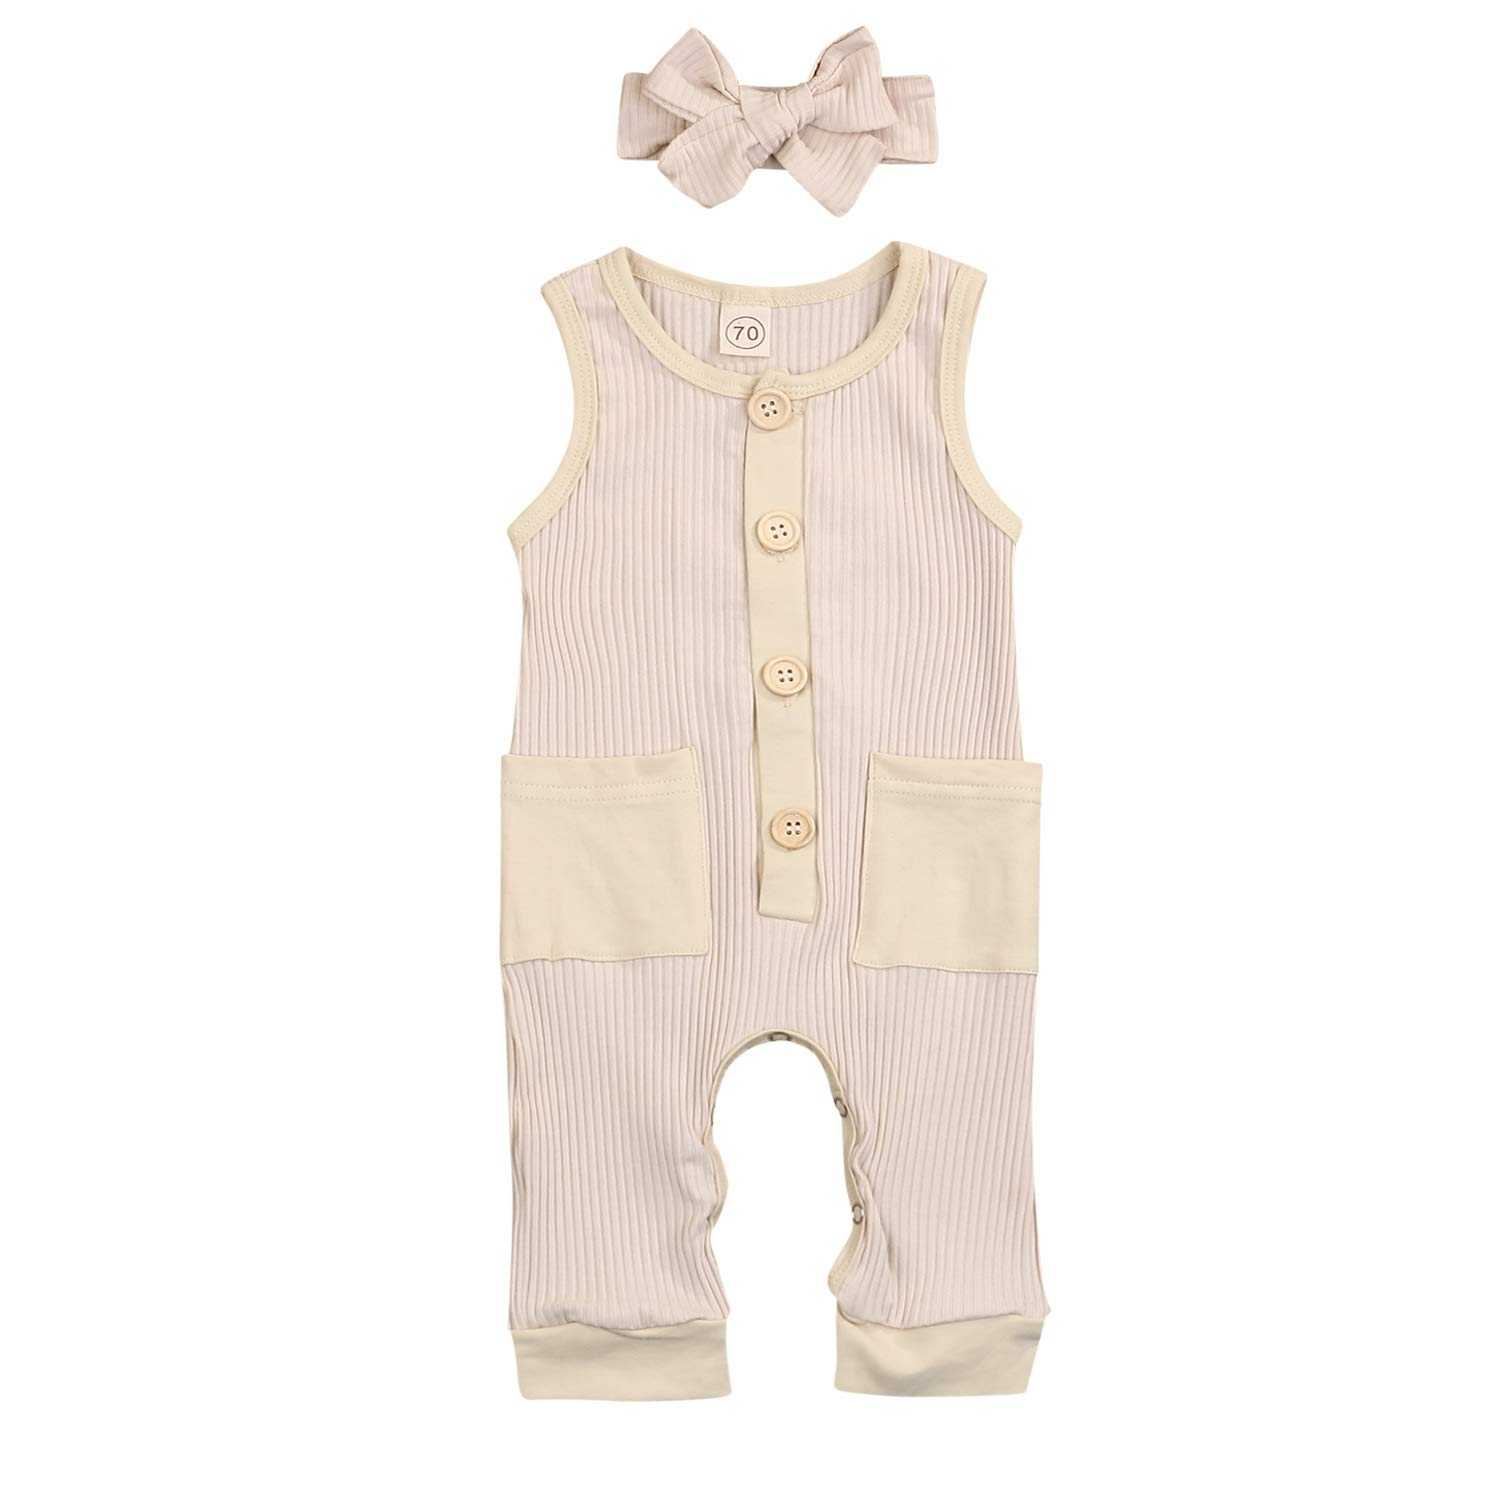 Newborn Baby Boys Girls Summer Romper Outfits One Piece Sleeveless Solid Color Jumpsuit Bodysuit Clothes Set 0-24M